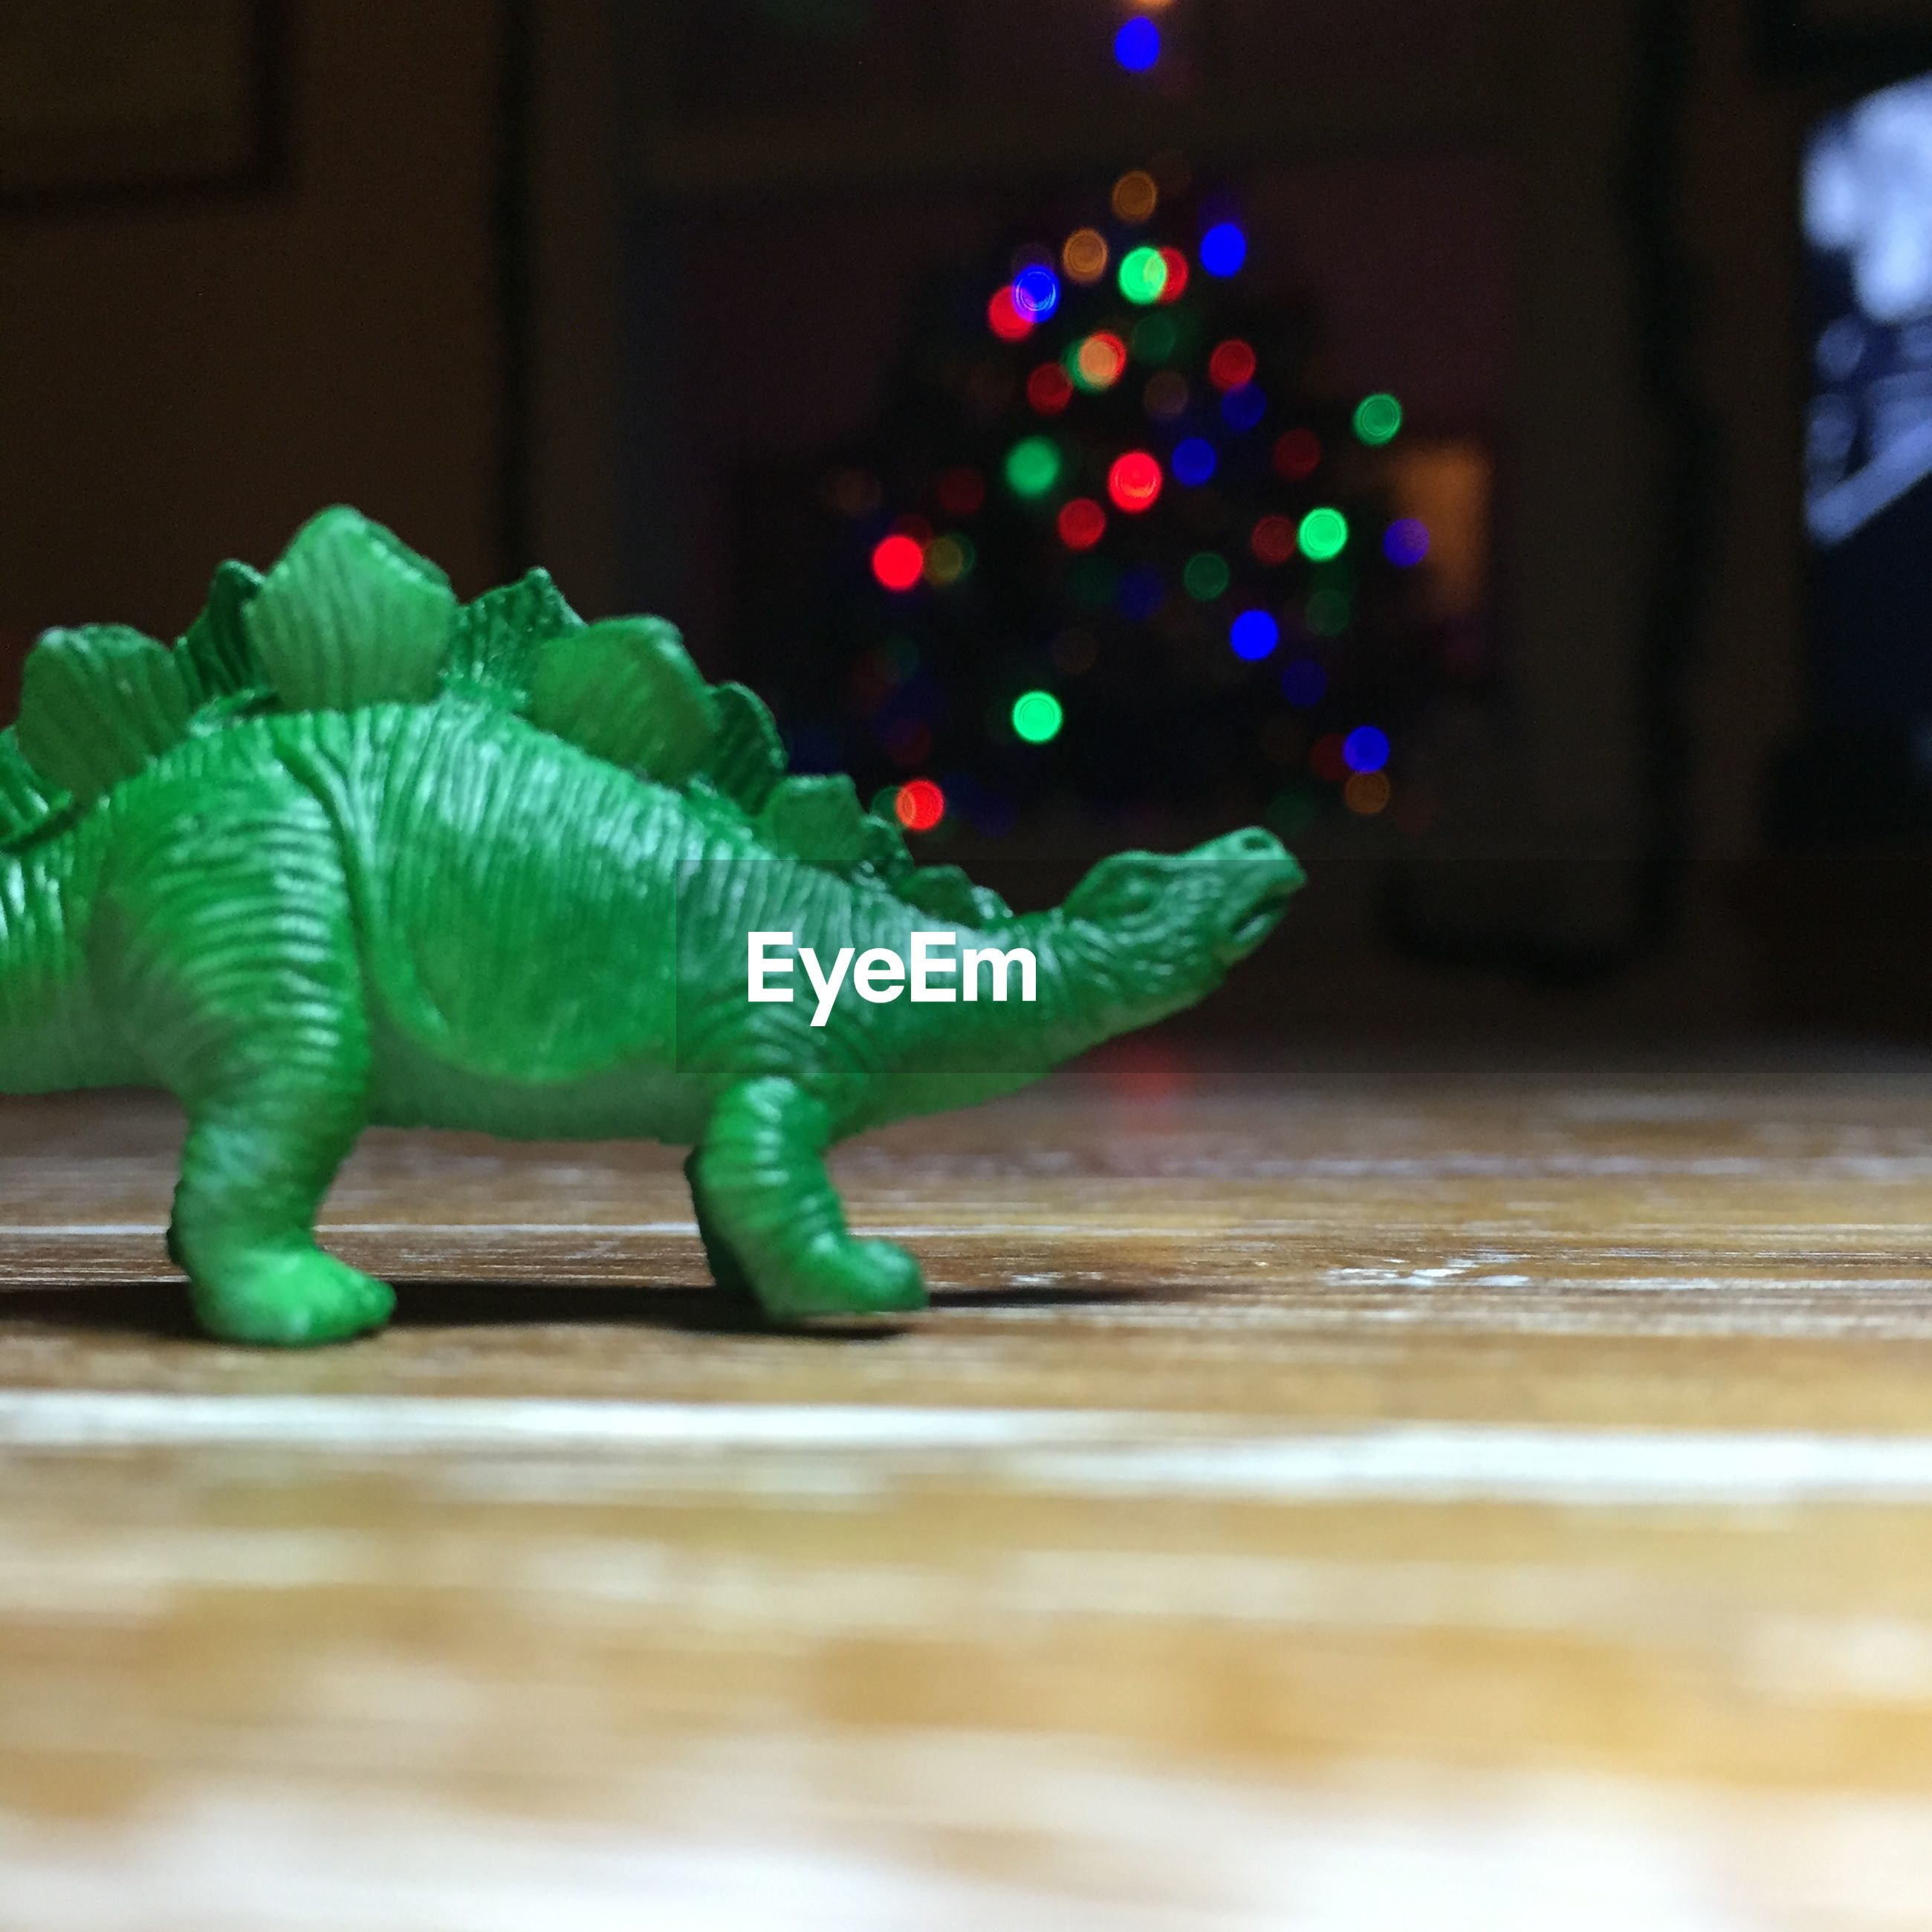 Surface level view of green dinosaur toy on floor at home